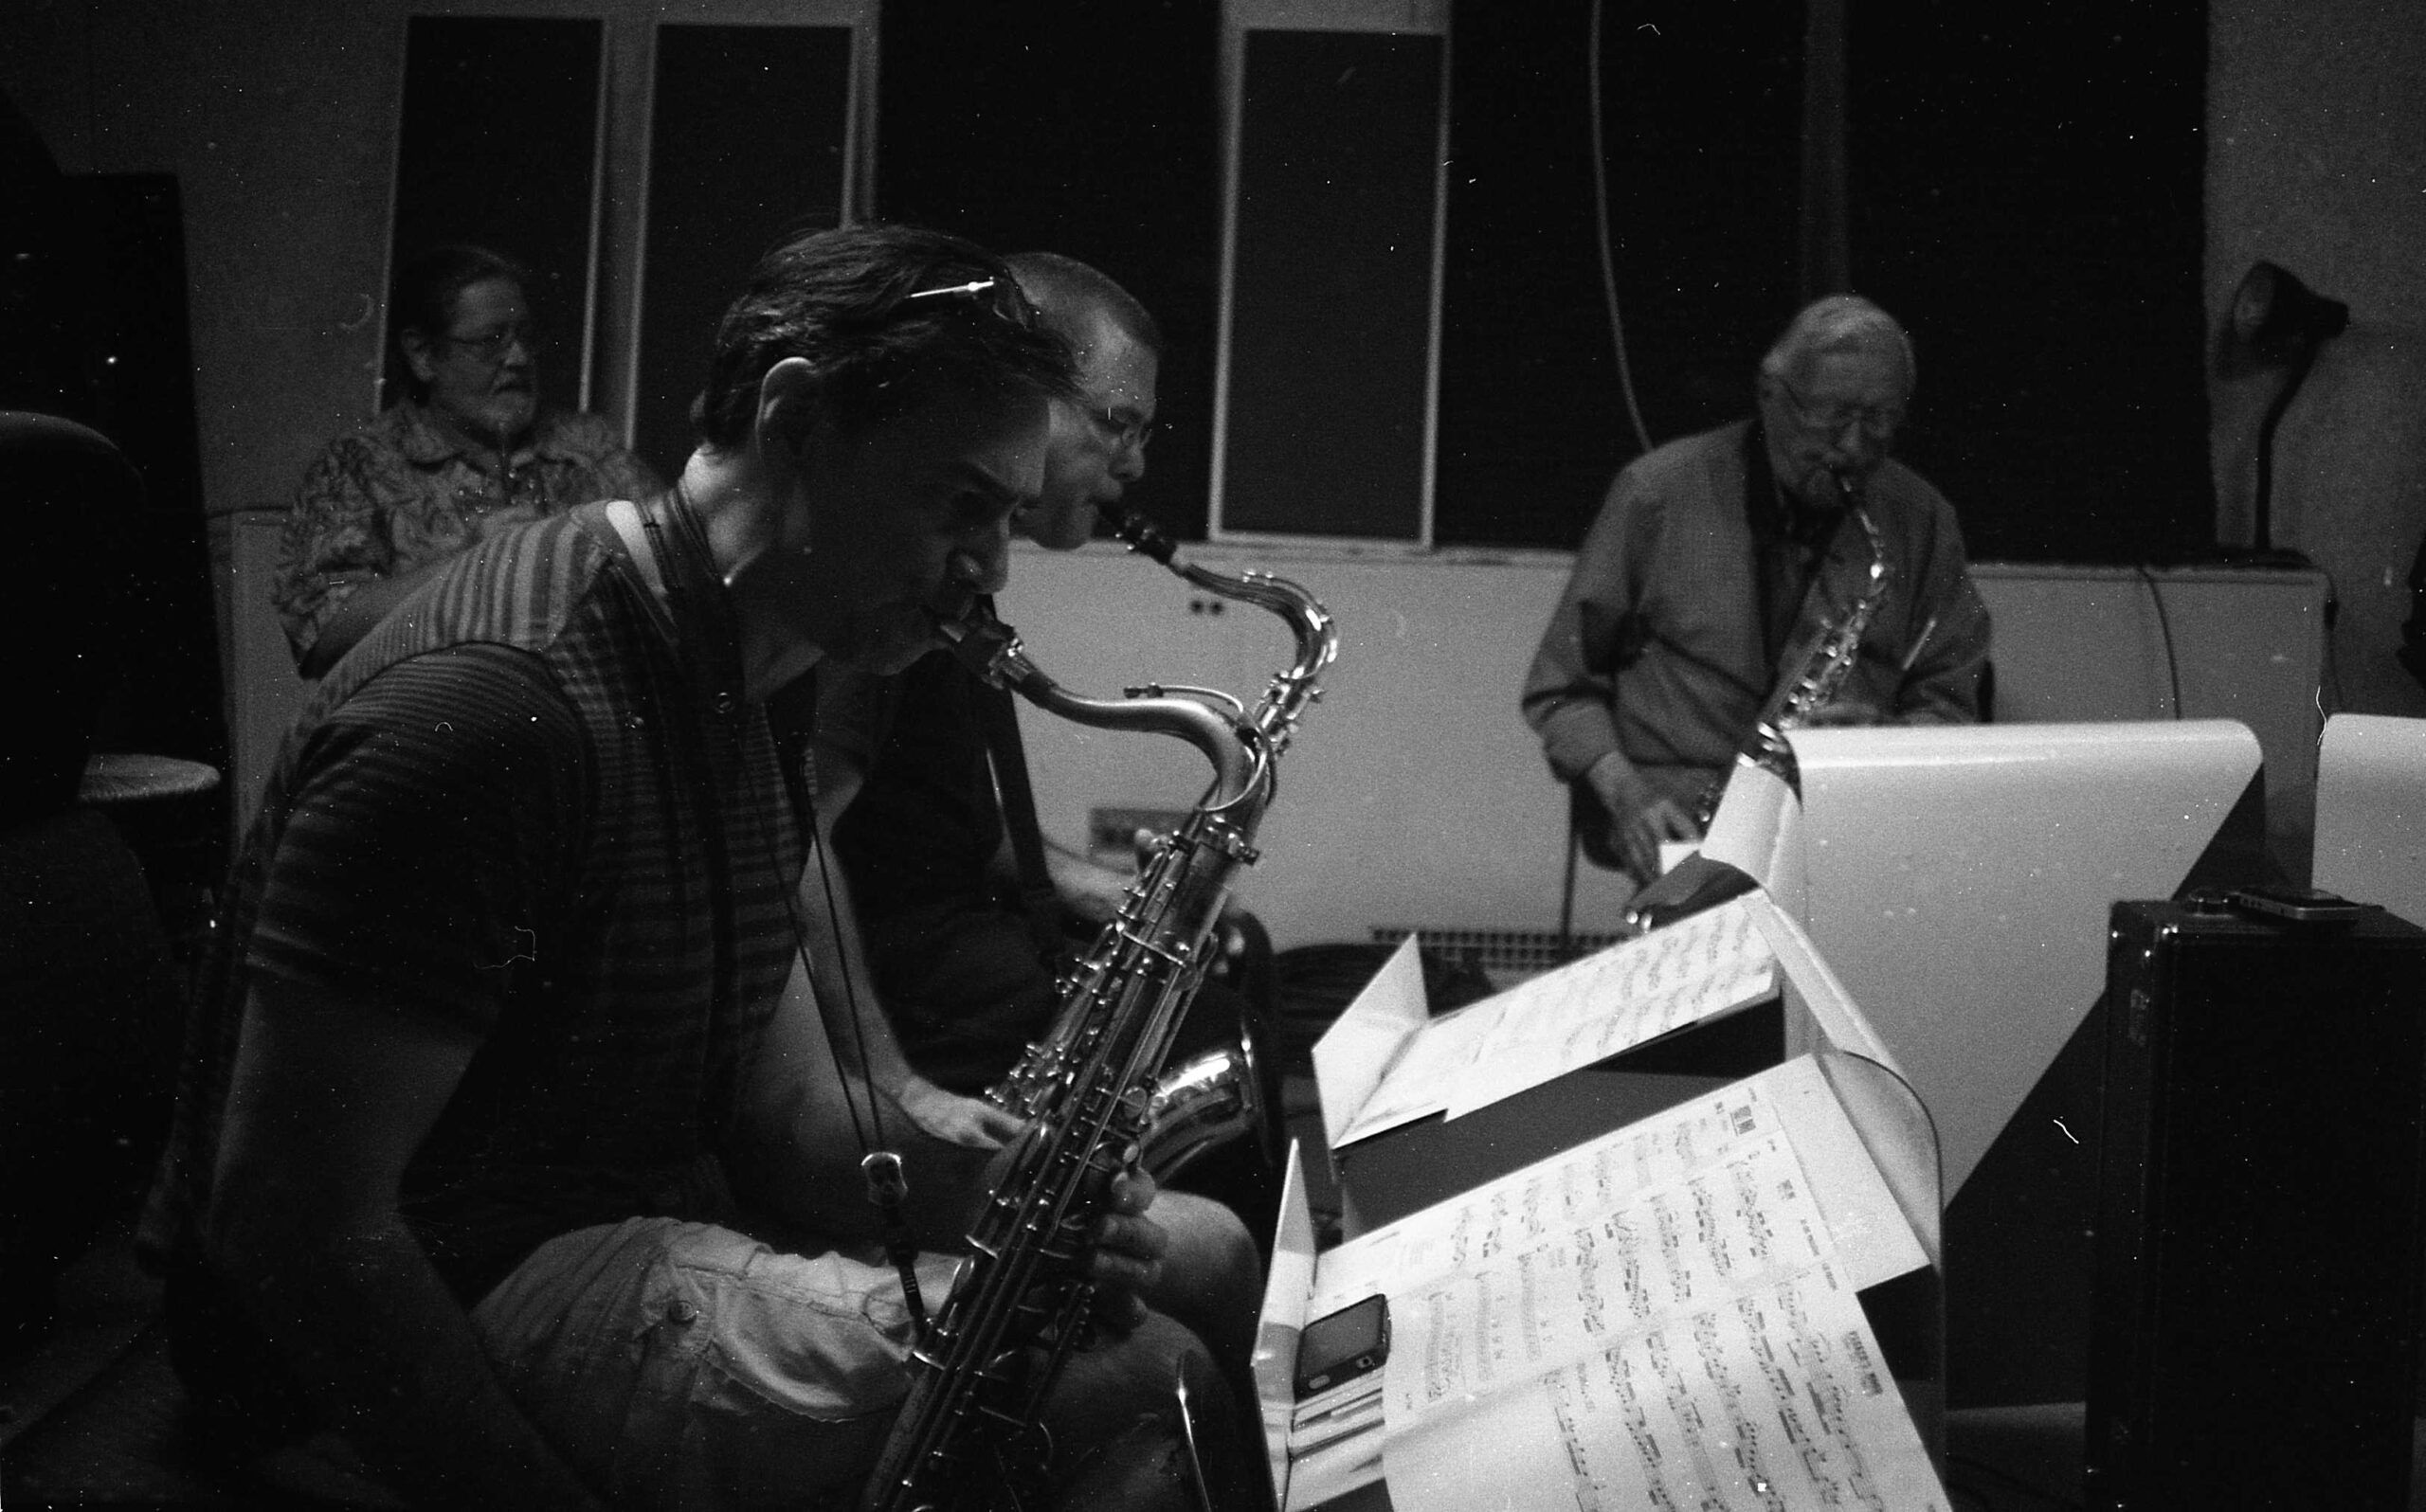 The five saxophones that were SuperSax New Mexico in the studio at KUNM ---- Kanoa Kalihiwa, Lee Taylor, Arlen Asher, Dave Anderson, Glenn Kostur (saxophones), Bert Dalton(piano), Michael Glynn(bass), Cal Haines(drums), Bobby Shew(trumpet soloist) ---- Reading down the charts of the 1970 Los Angeles ensemble Supersax ---- Photo by MW May 15, 2011